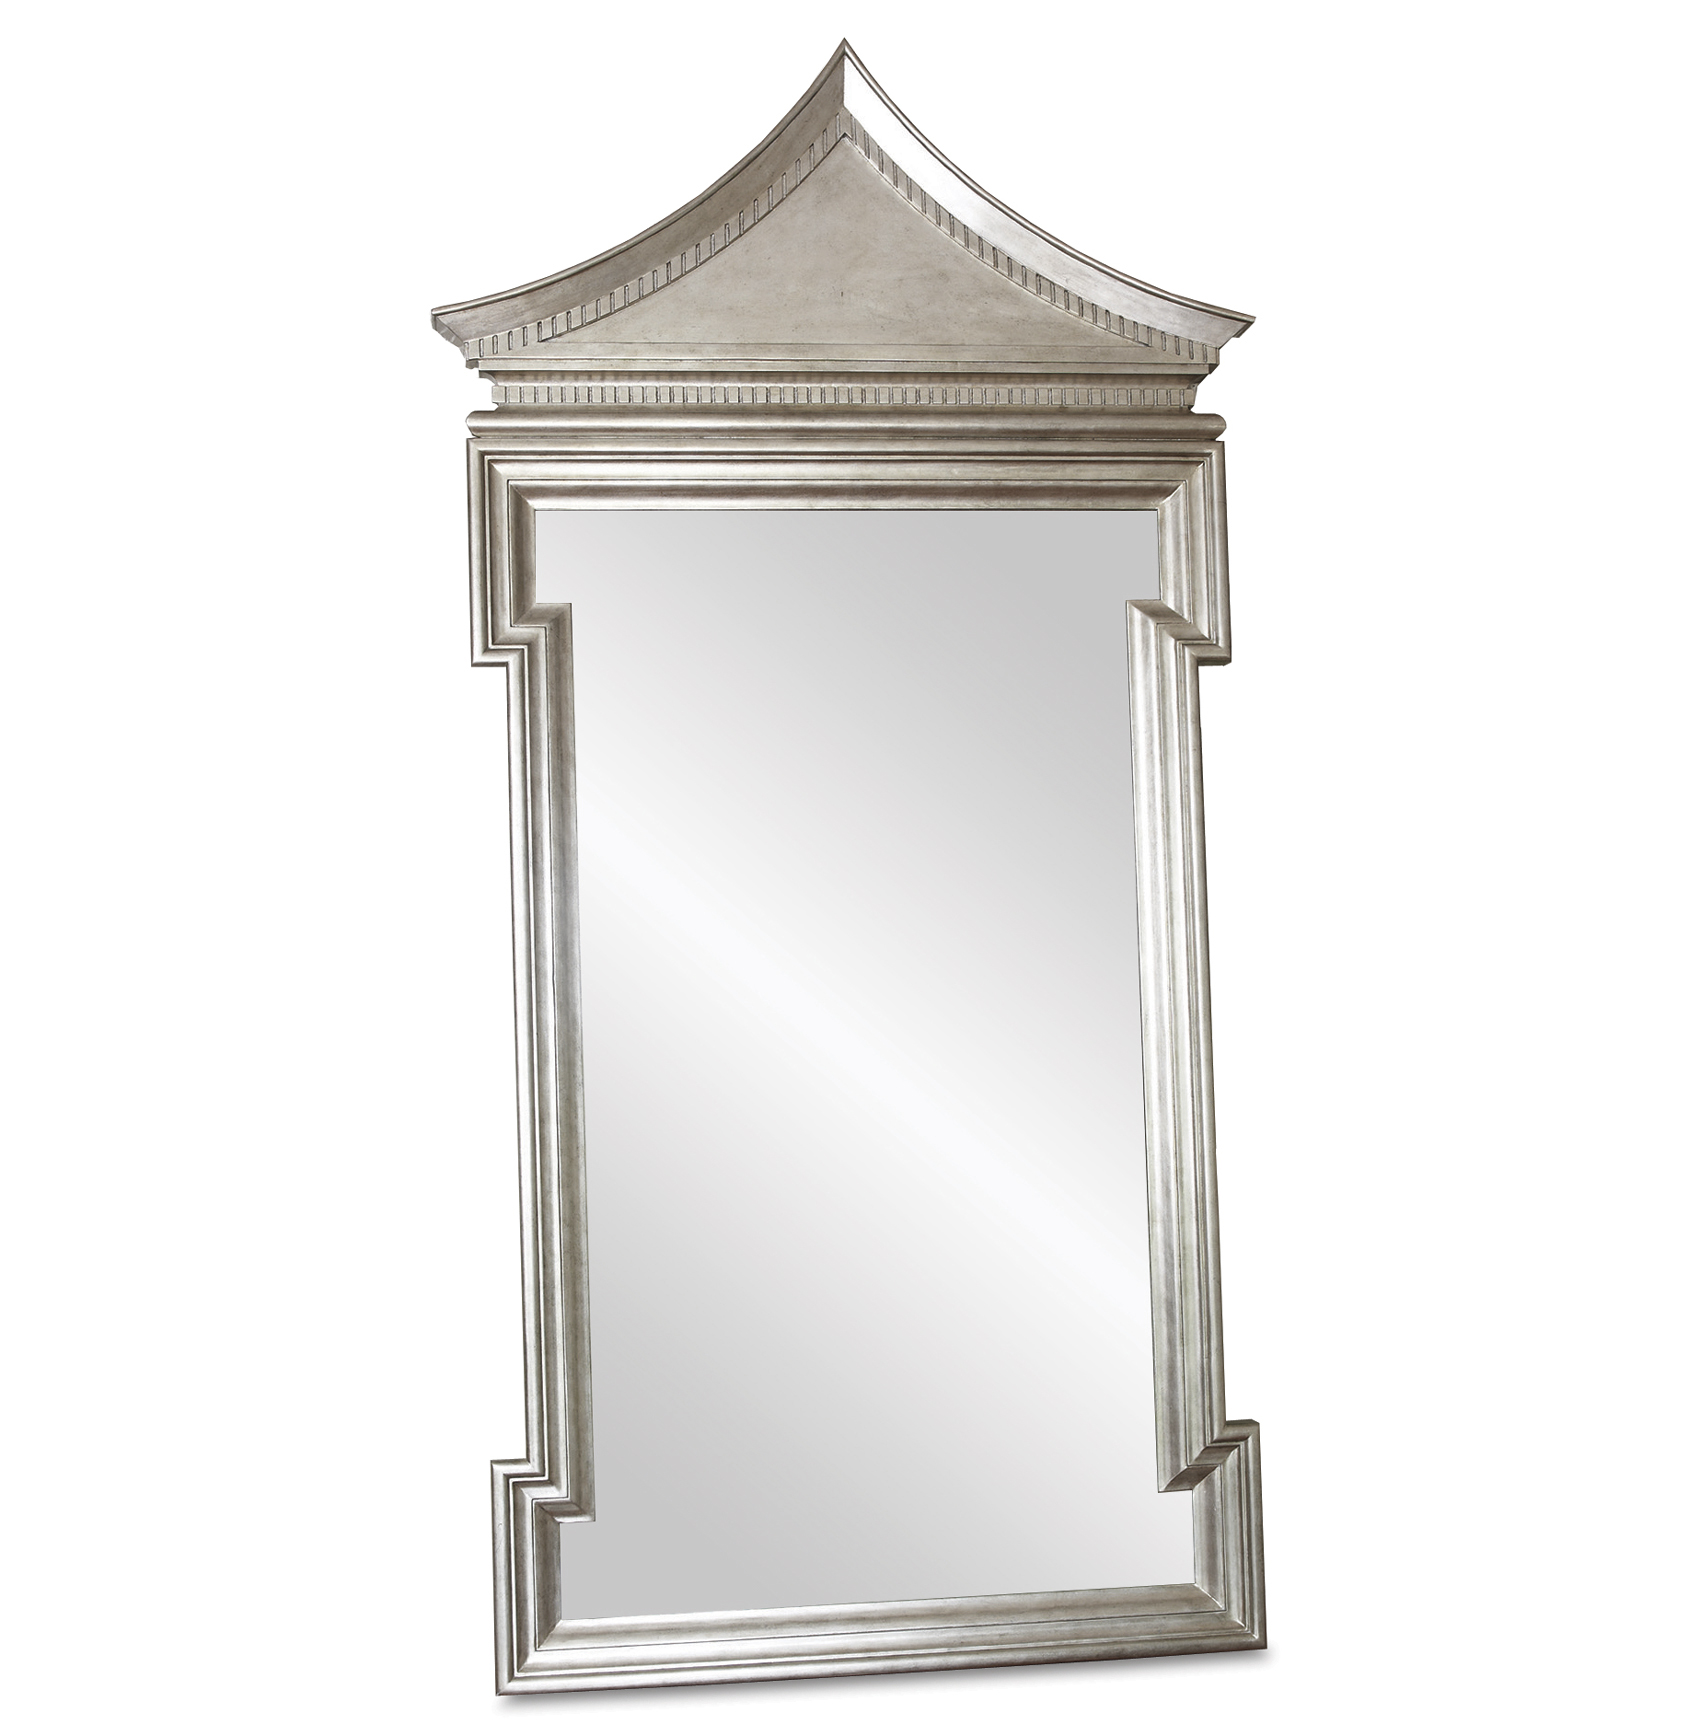 Governors Palace Hollywood Regency Antique Silver Leaf Floor Mirror - 96 Inch